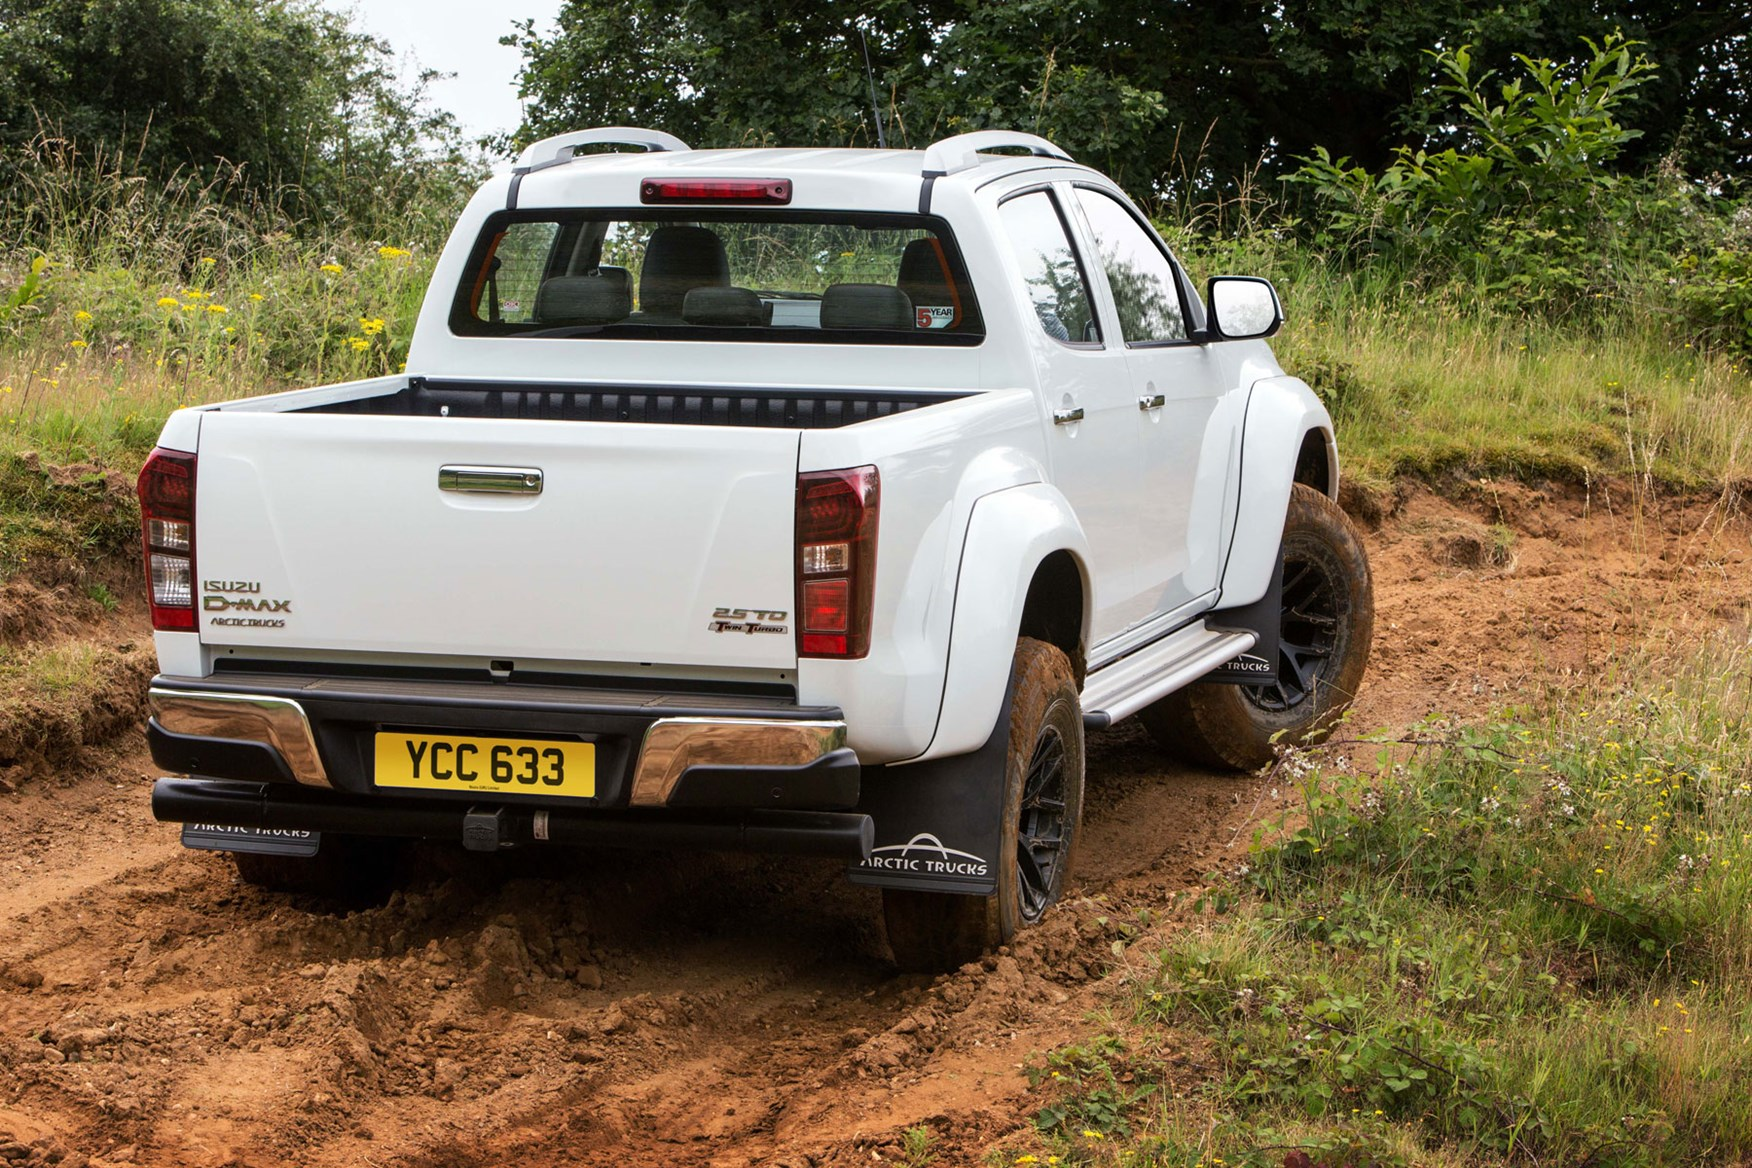 Isuzu D-Max AT35 2.5 review - rear view, driving up muddy hill, white